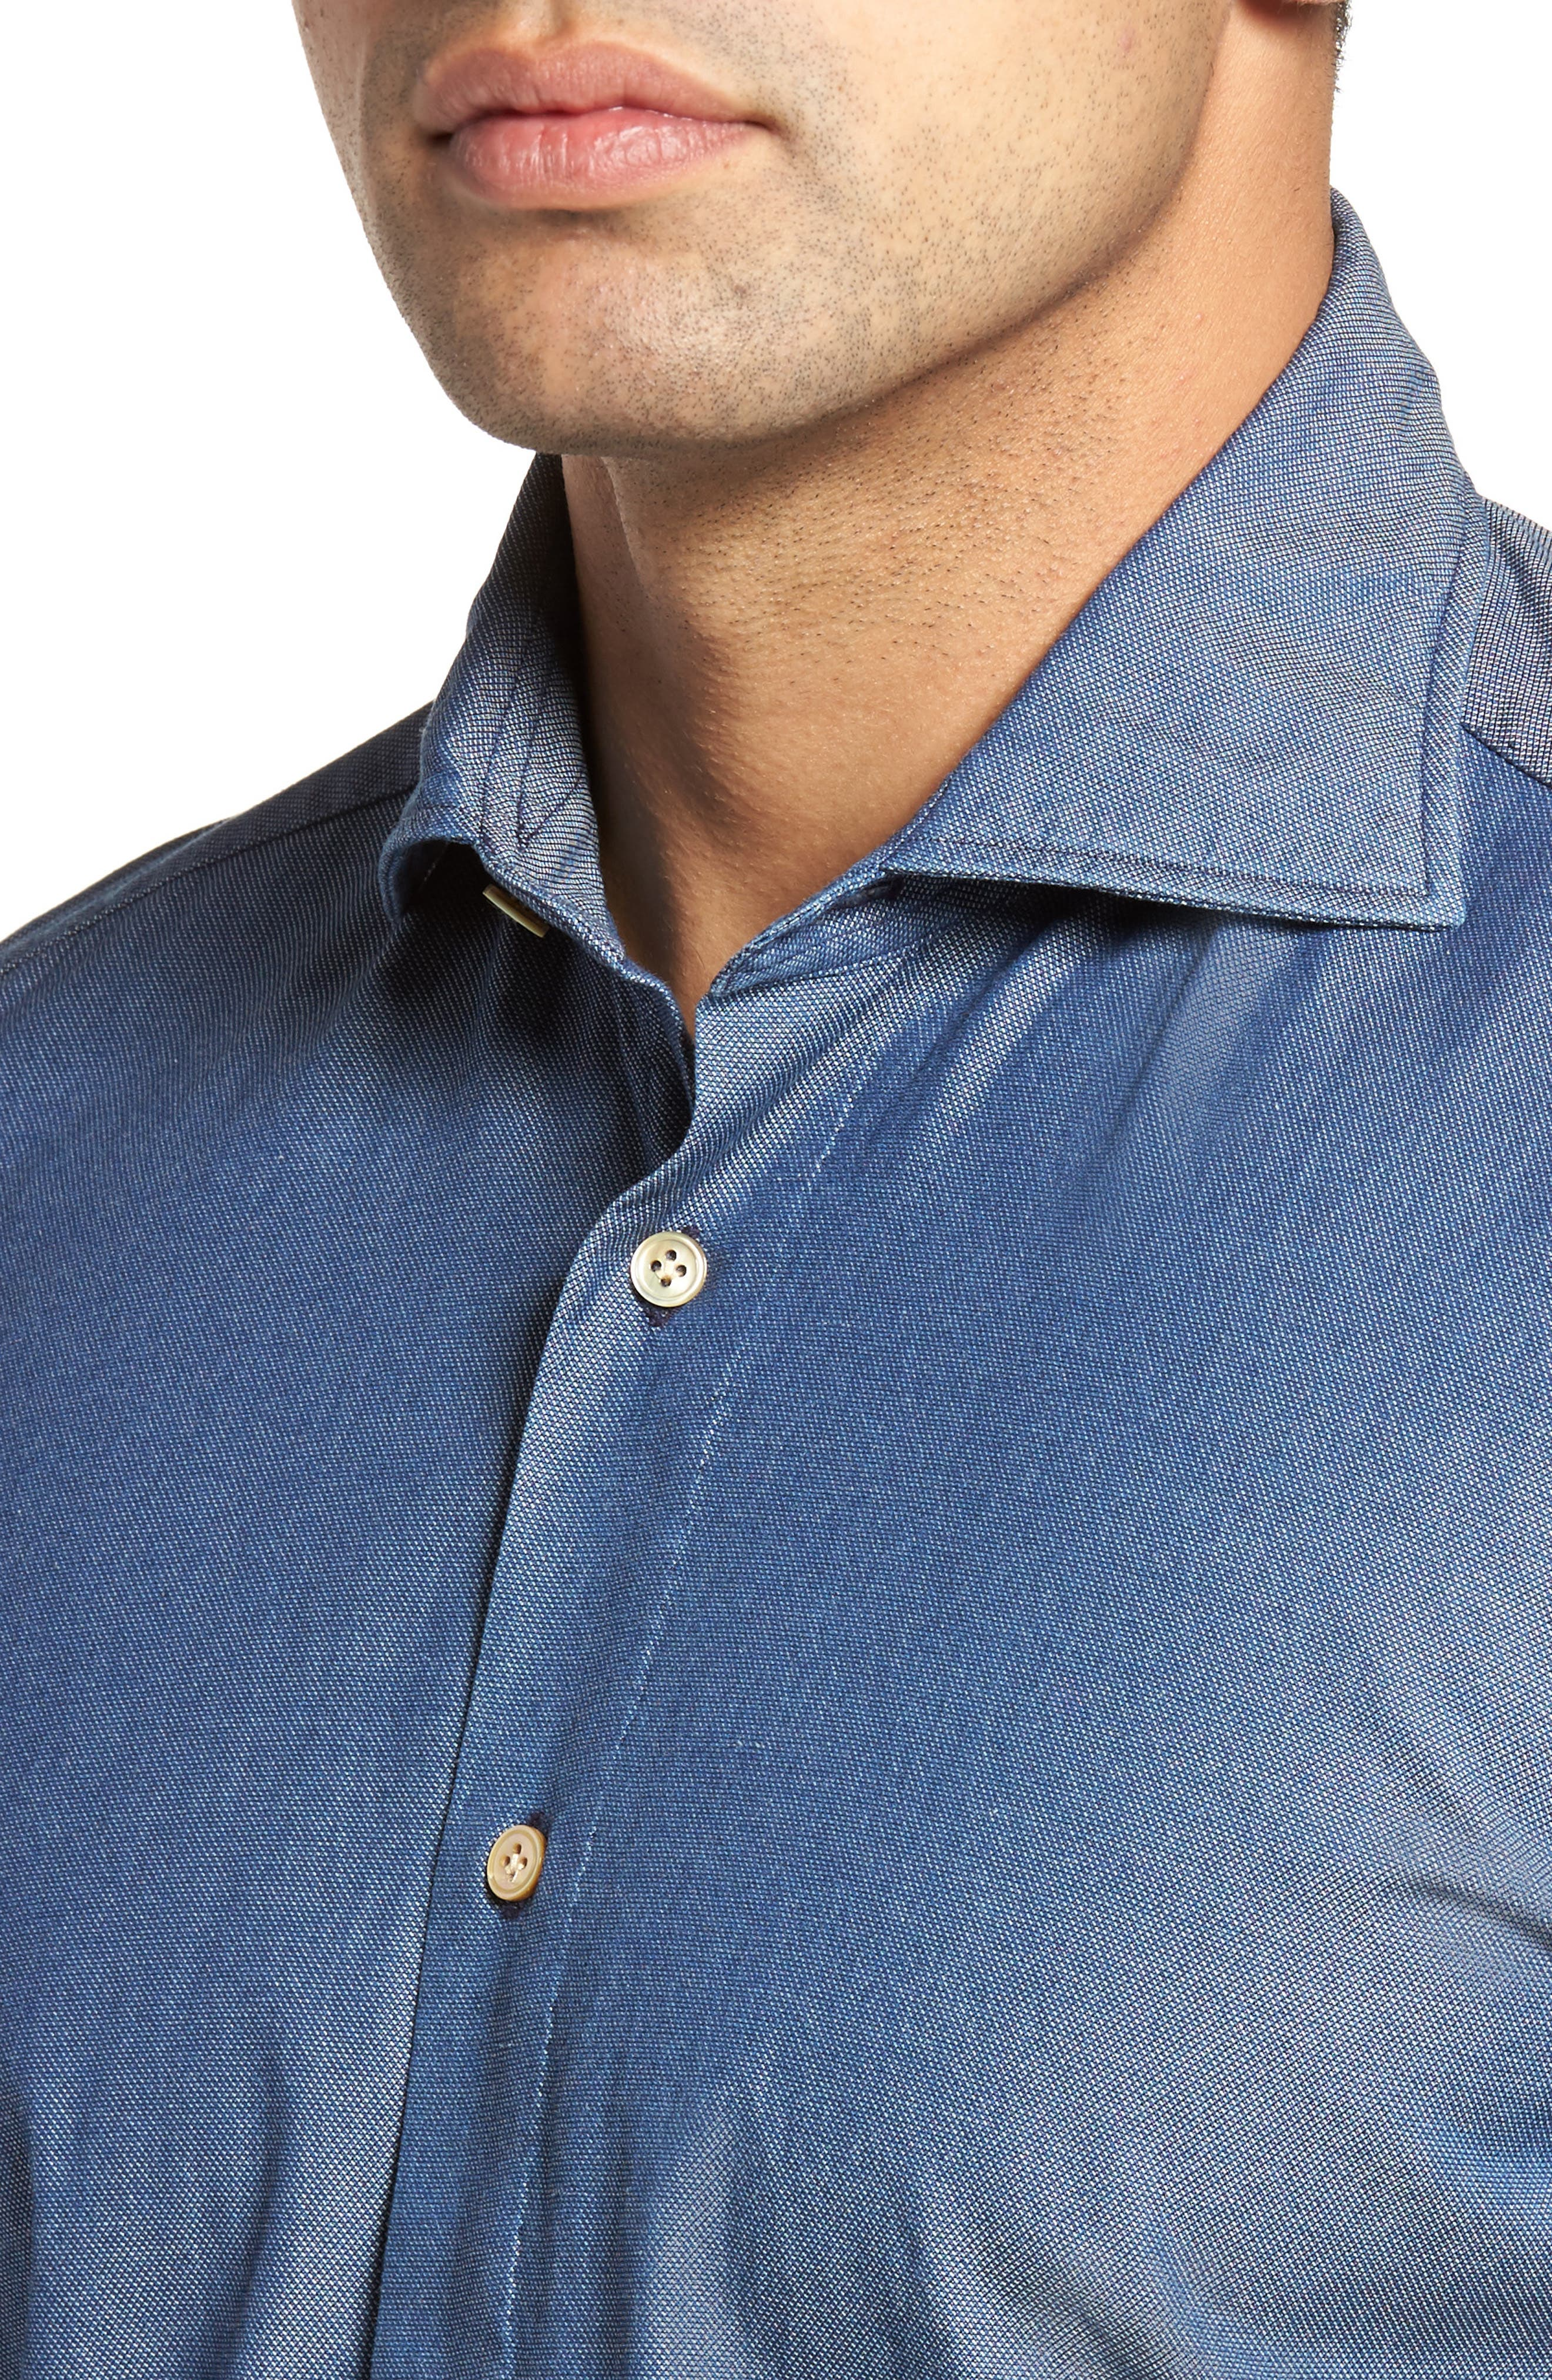 Classic Fit Bird's Eye Sport Shirt,                             Alternate thumbnail 4, color,                             Navy